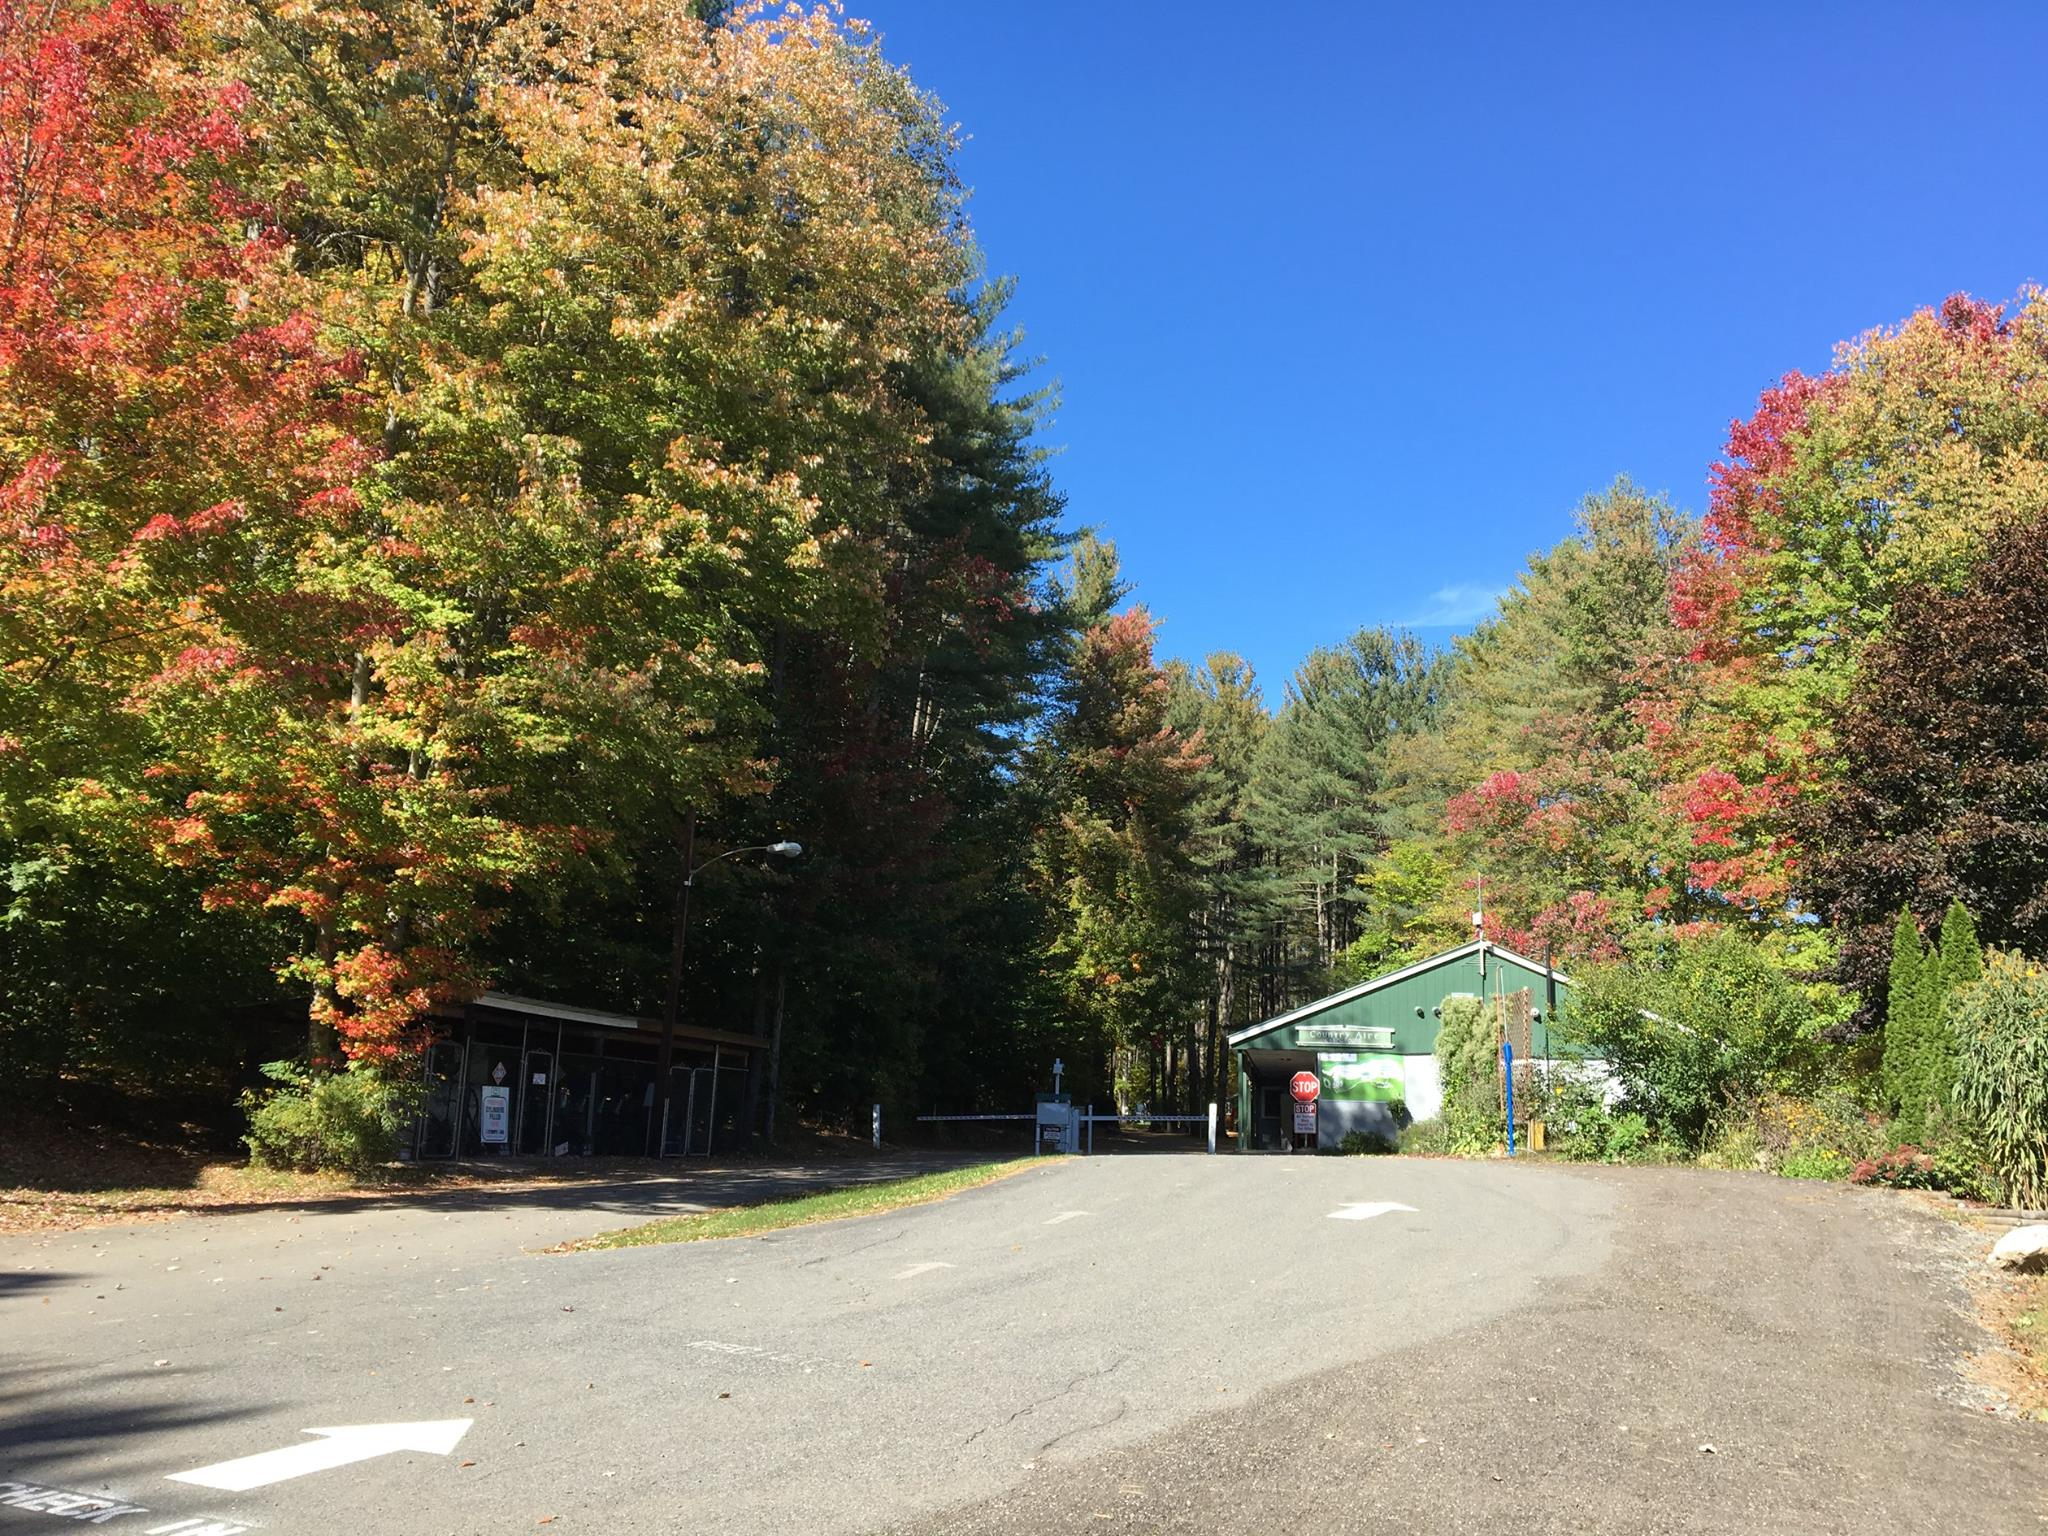 Campground Entrance